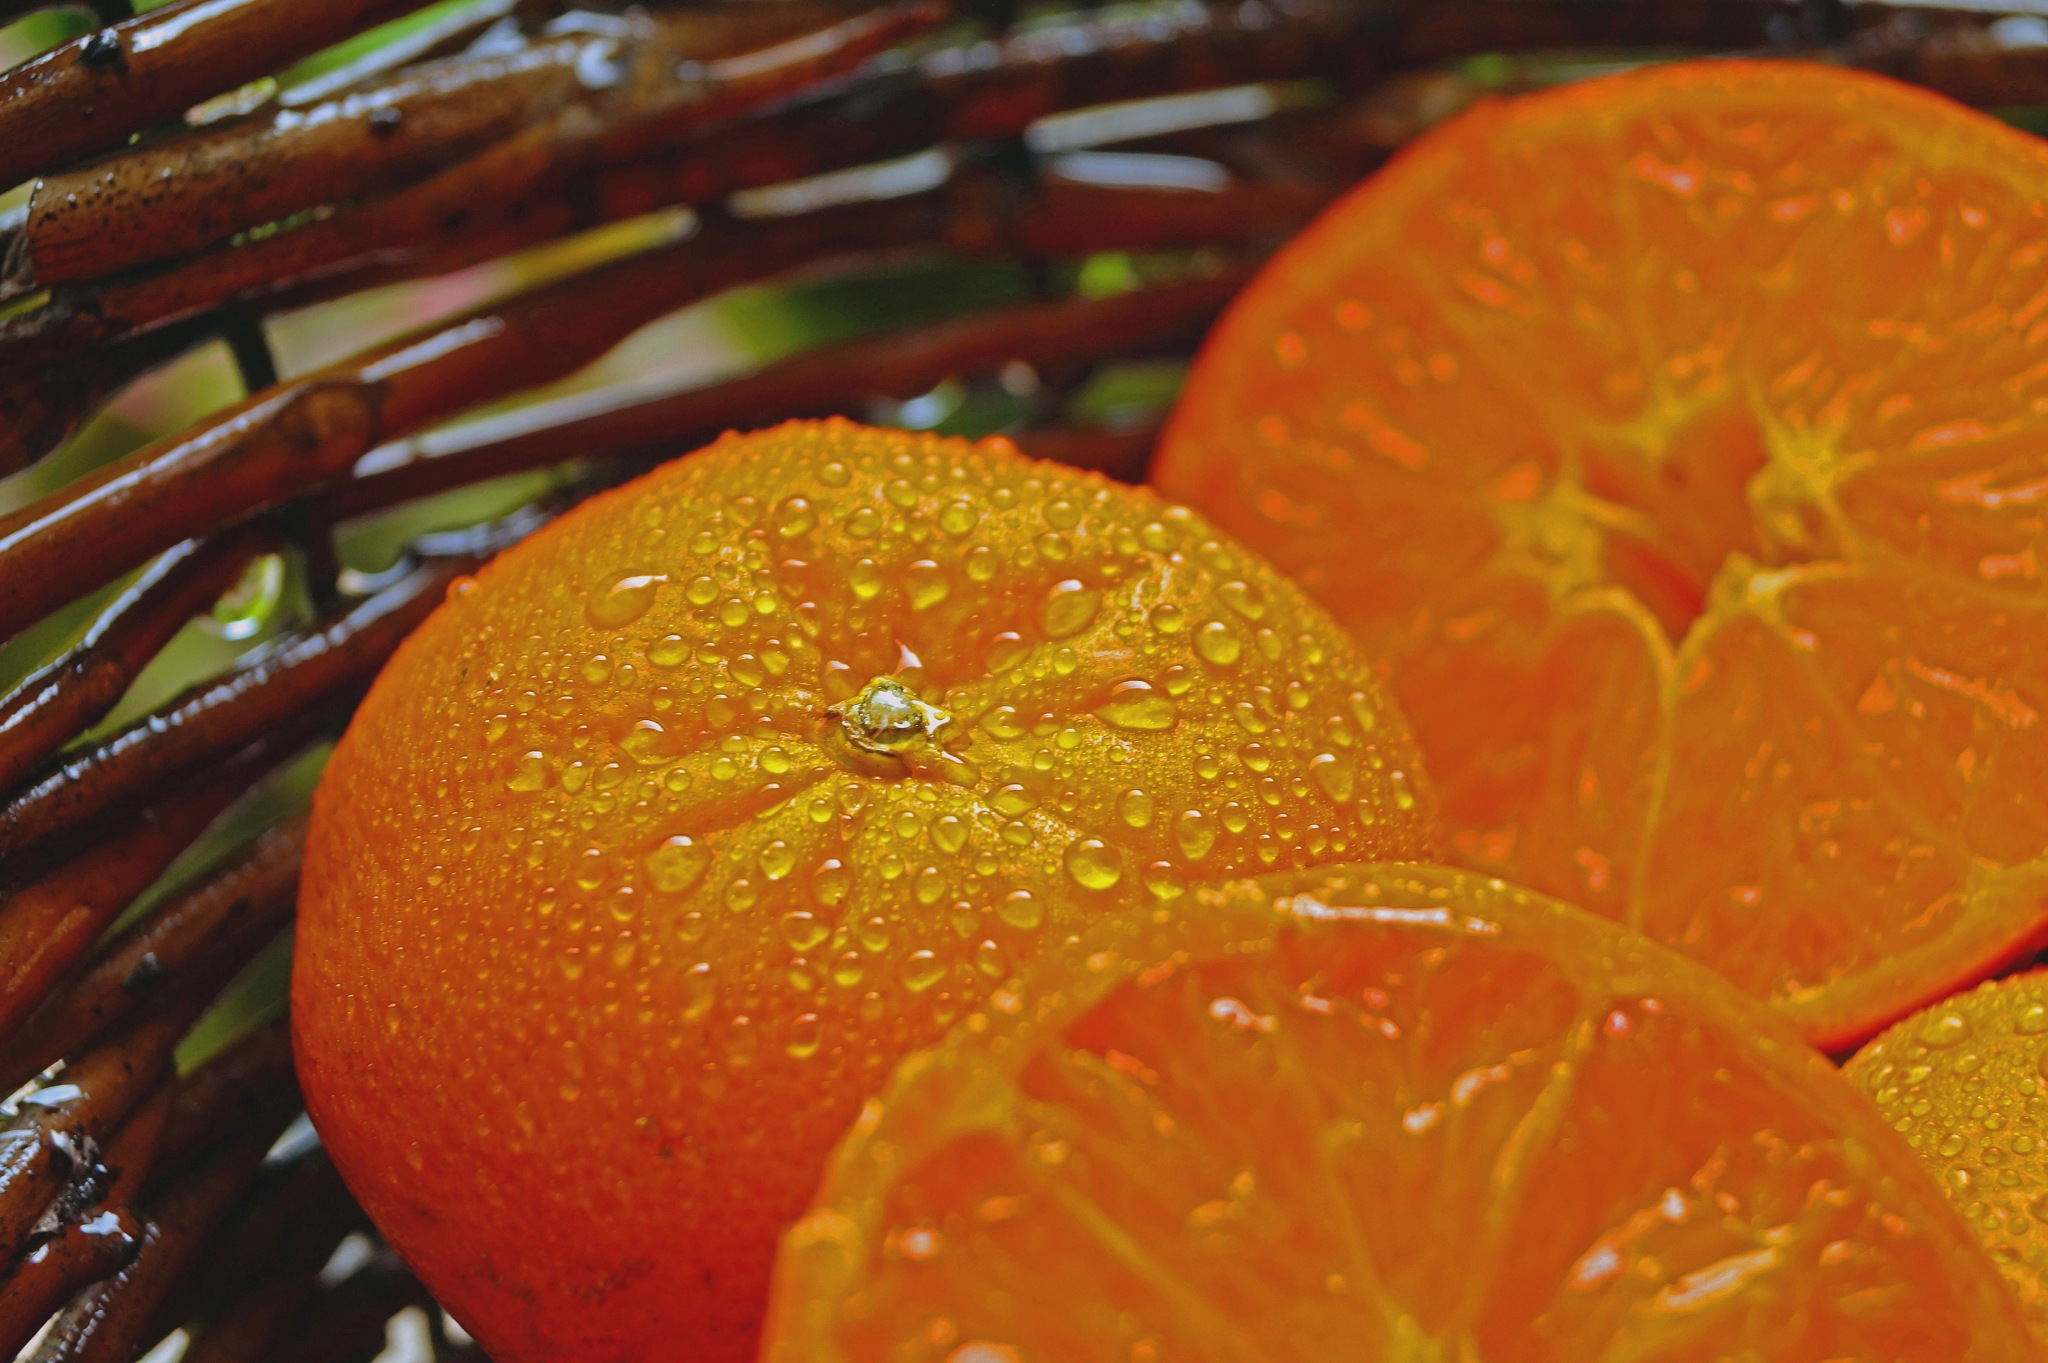 Mandarins in the Rain by Marian Baay